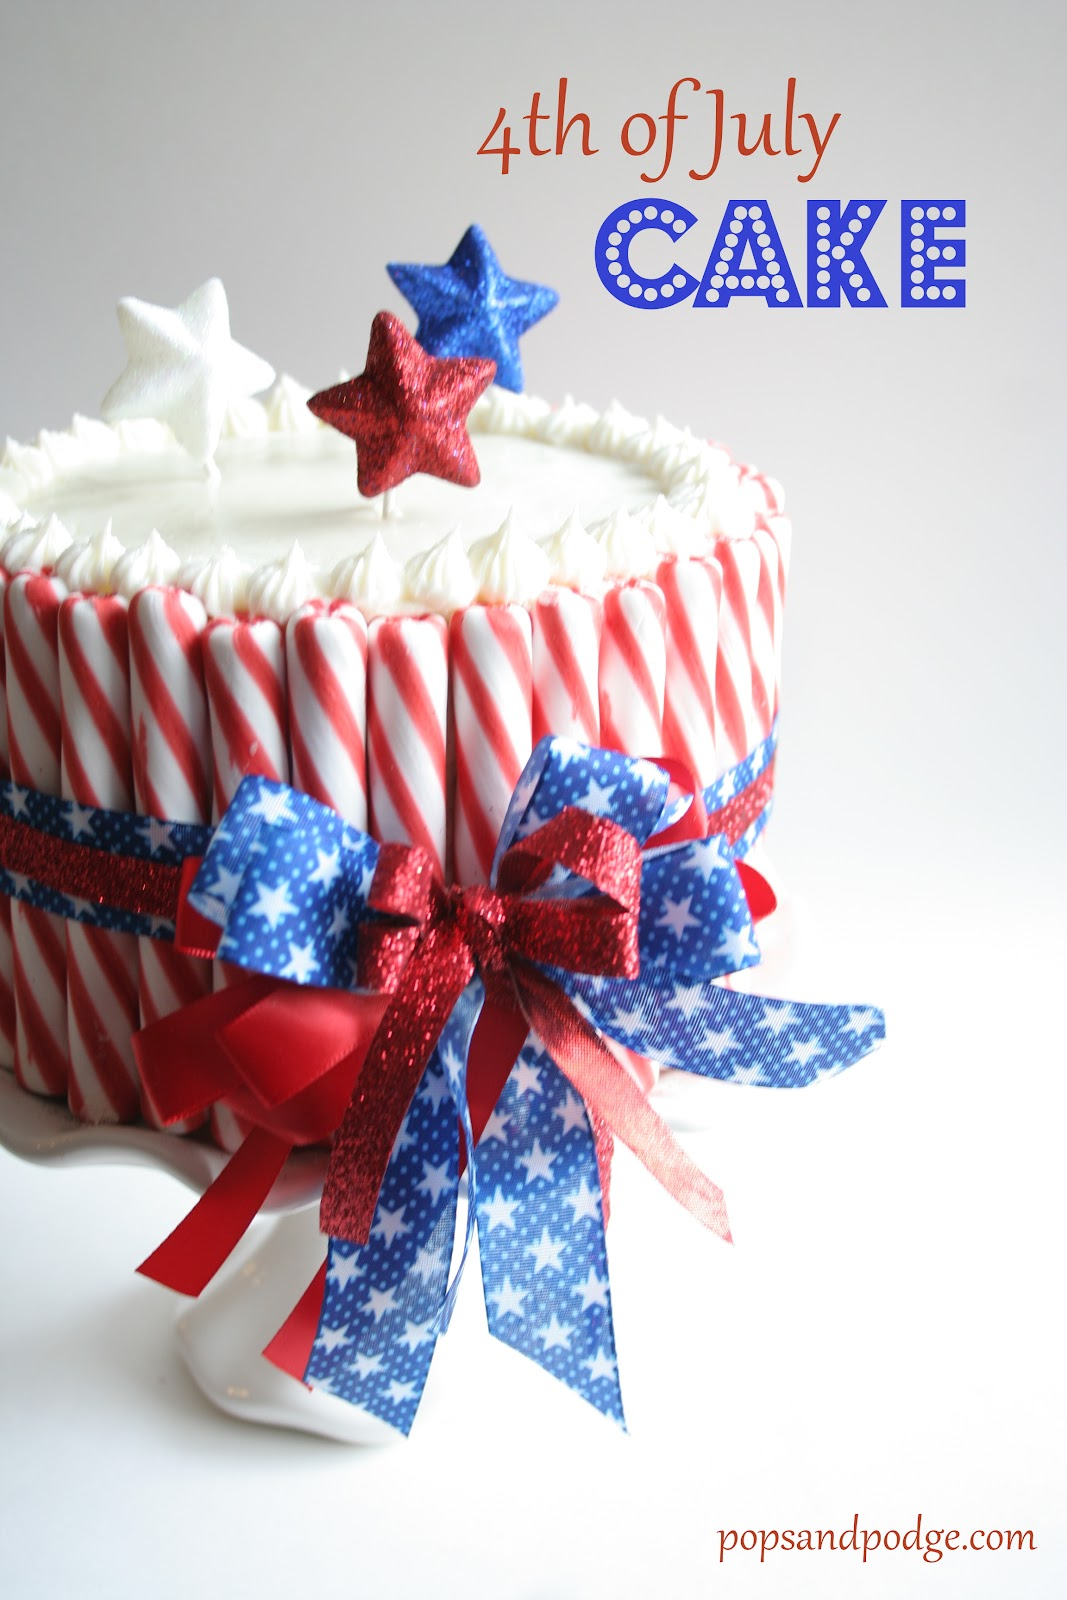 4th of july cake photos